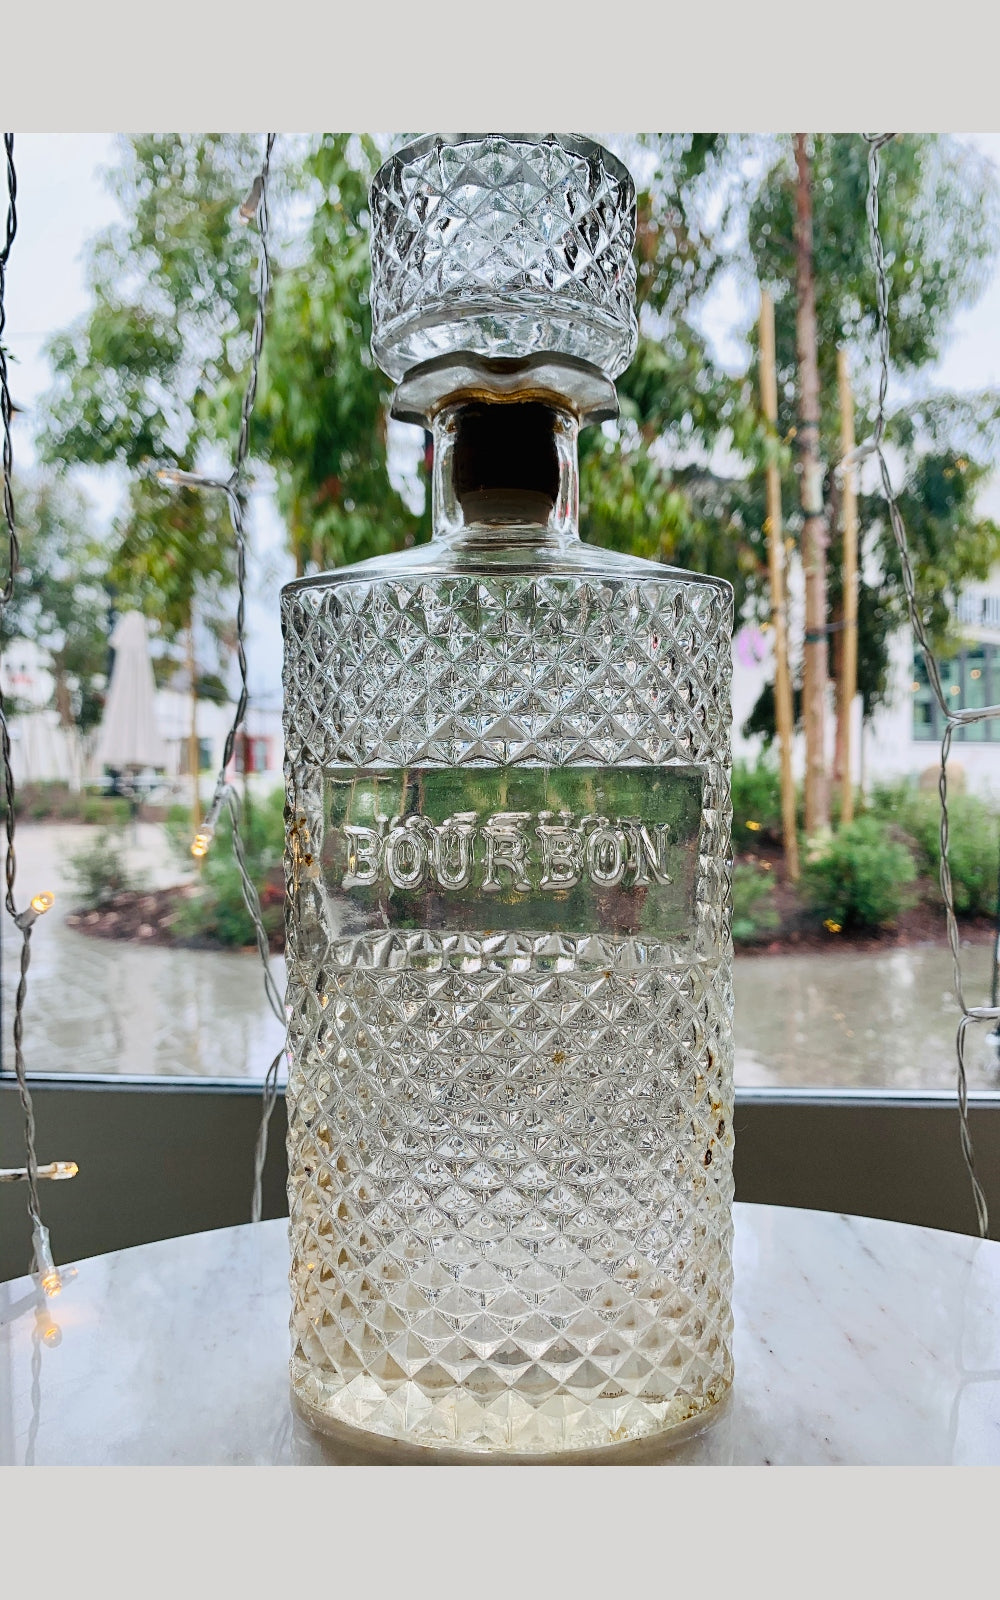 Bourbon Decanter